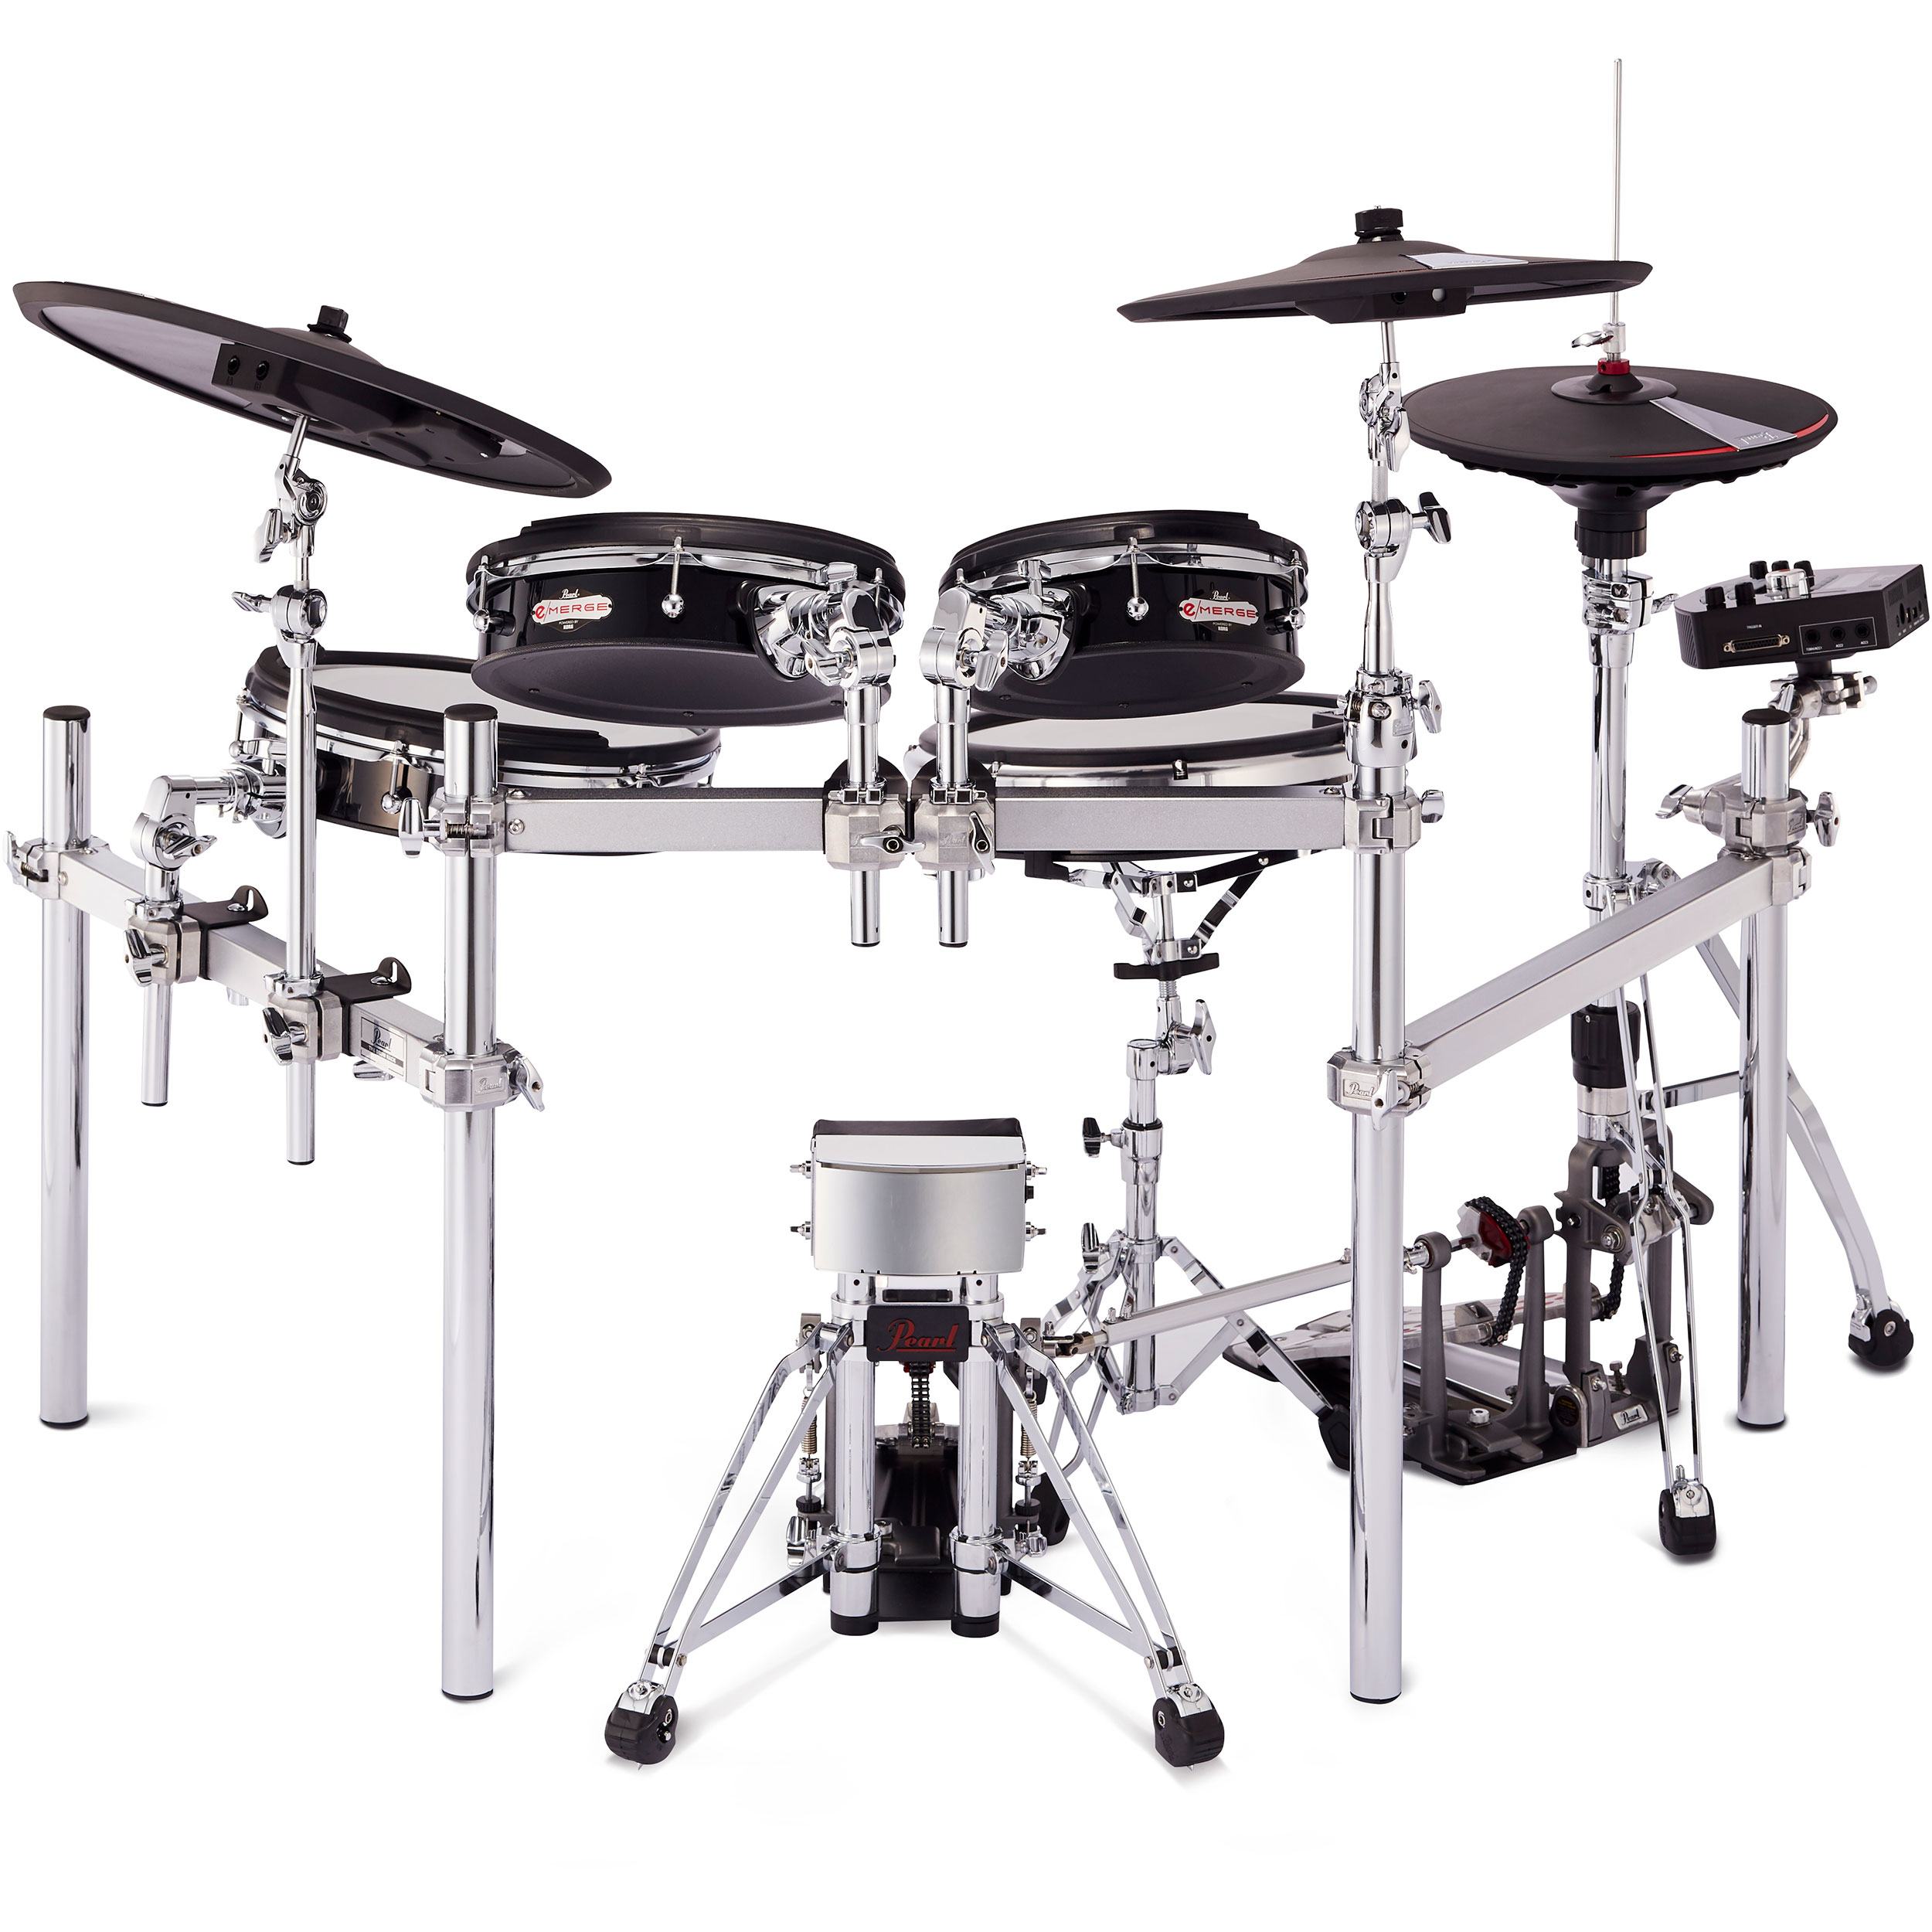 pearl e merge 5 piece traditional electronic drum set with hardware and cymbal pads em53t. Black Bedroom Furniture Sets. Home Design Ideas